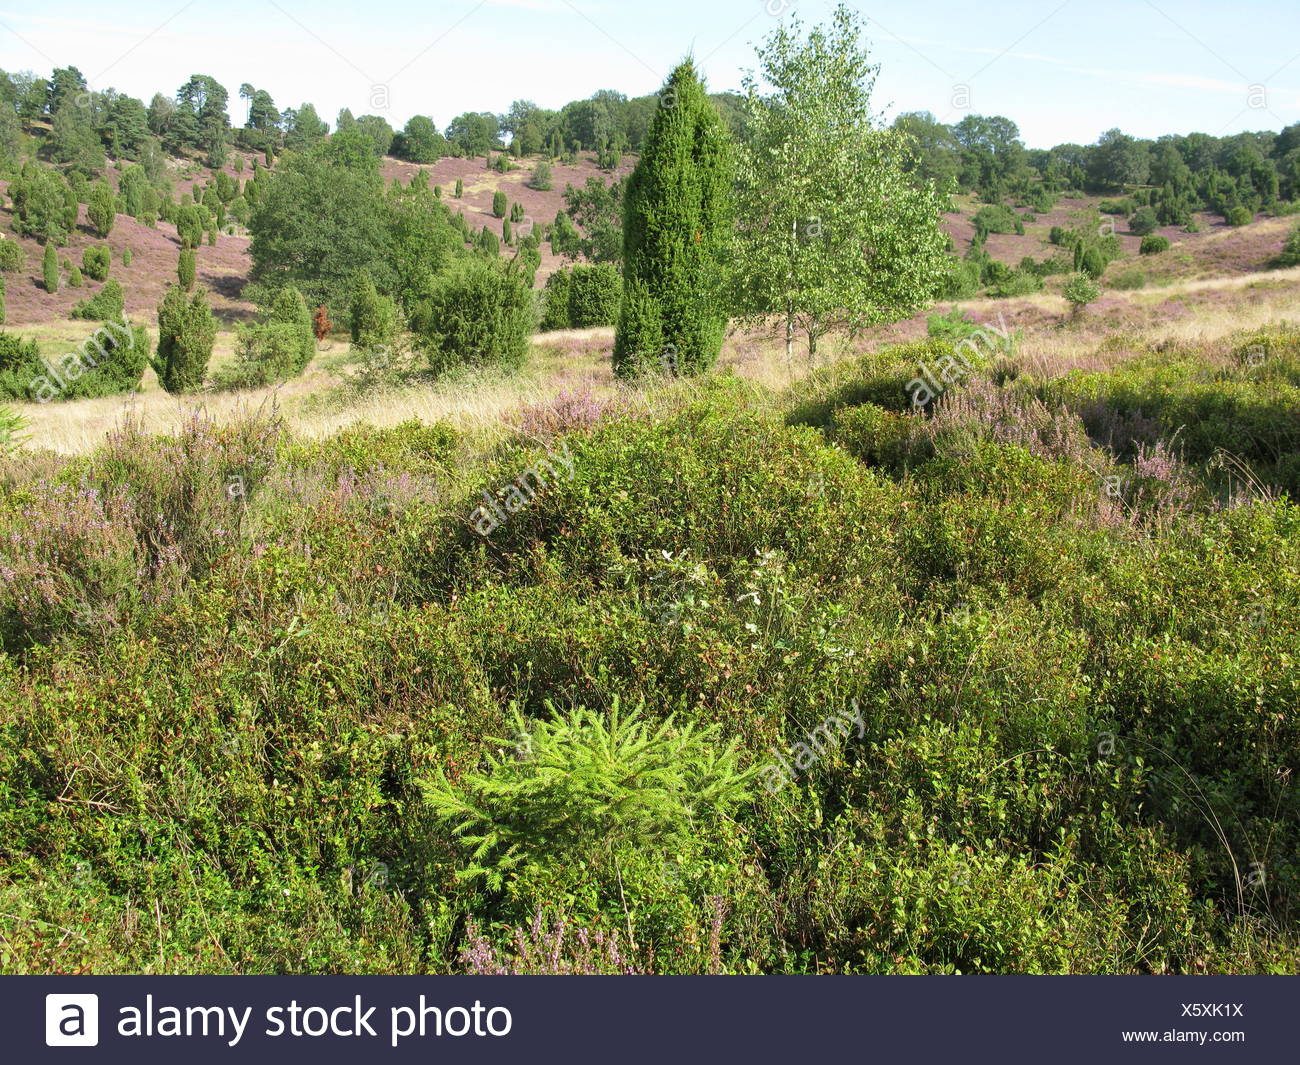 plant, conservation of nature, nature-sanctuary, tourist attraction, Northern Stock Photo